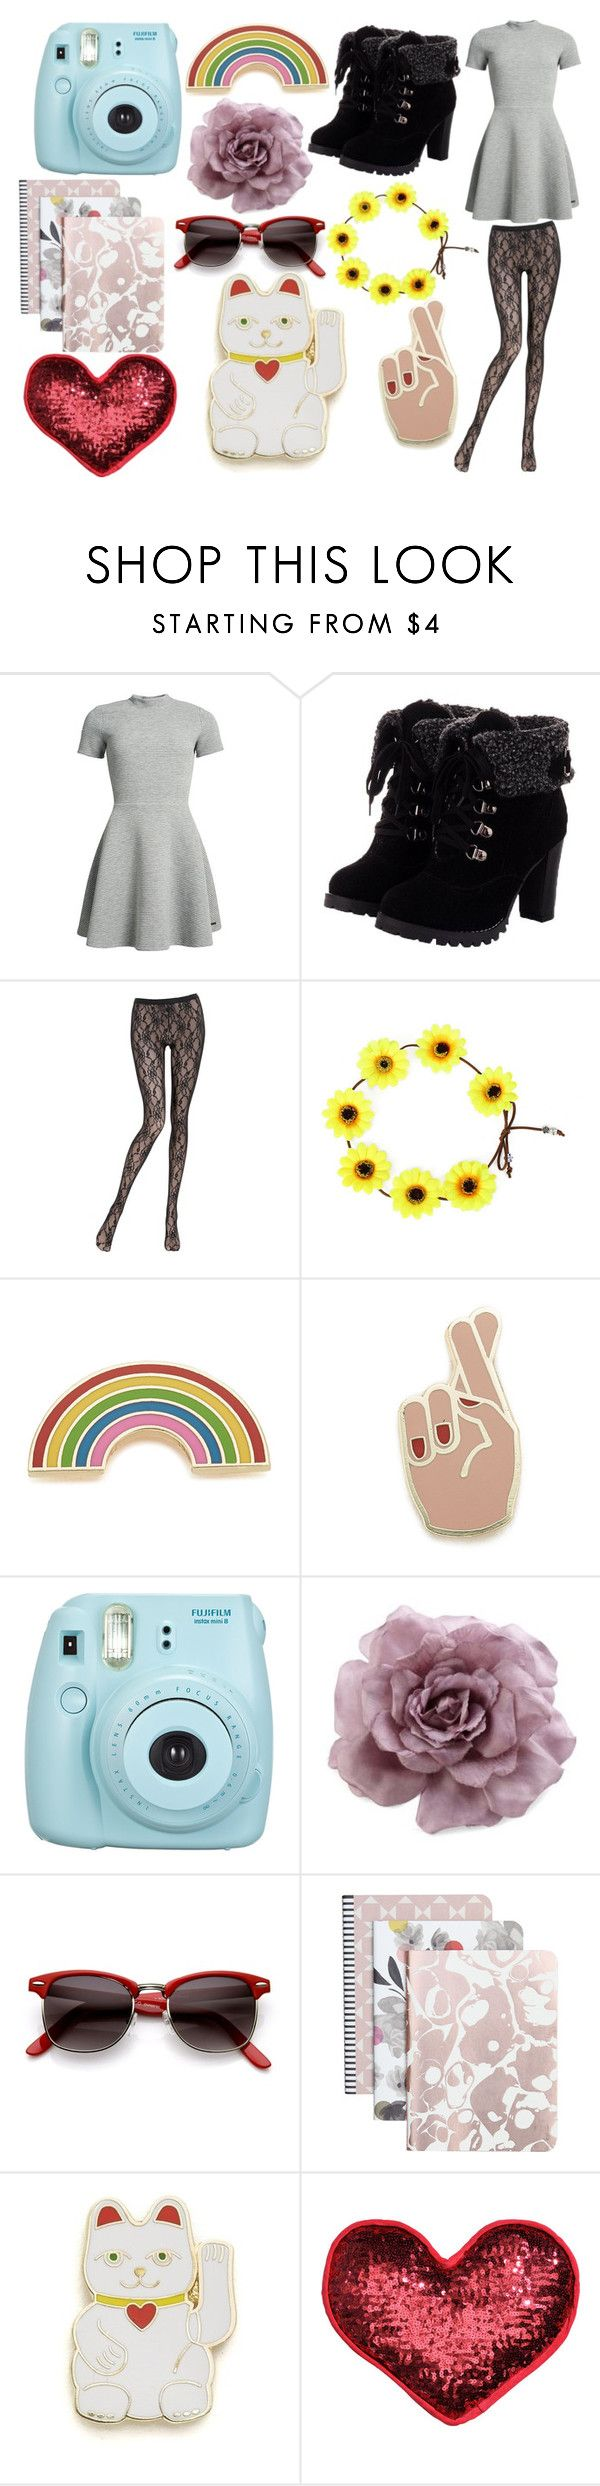 """""""Monday."""" by lxrry-bullshxt ❤ liked on Polyvore featuring Superdry, La Perla, Georgia Perry, Fujifilm, MOOD, ZeroUV, Caroline Gardner and H&M"""